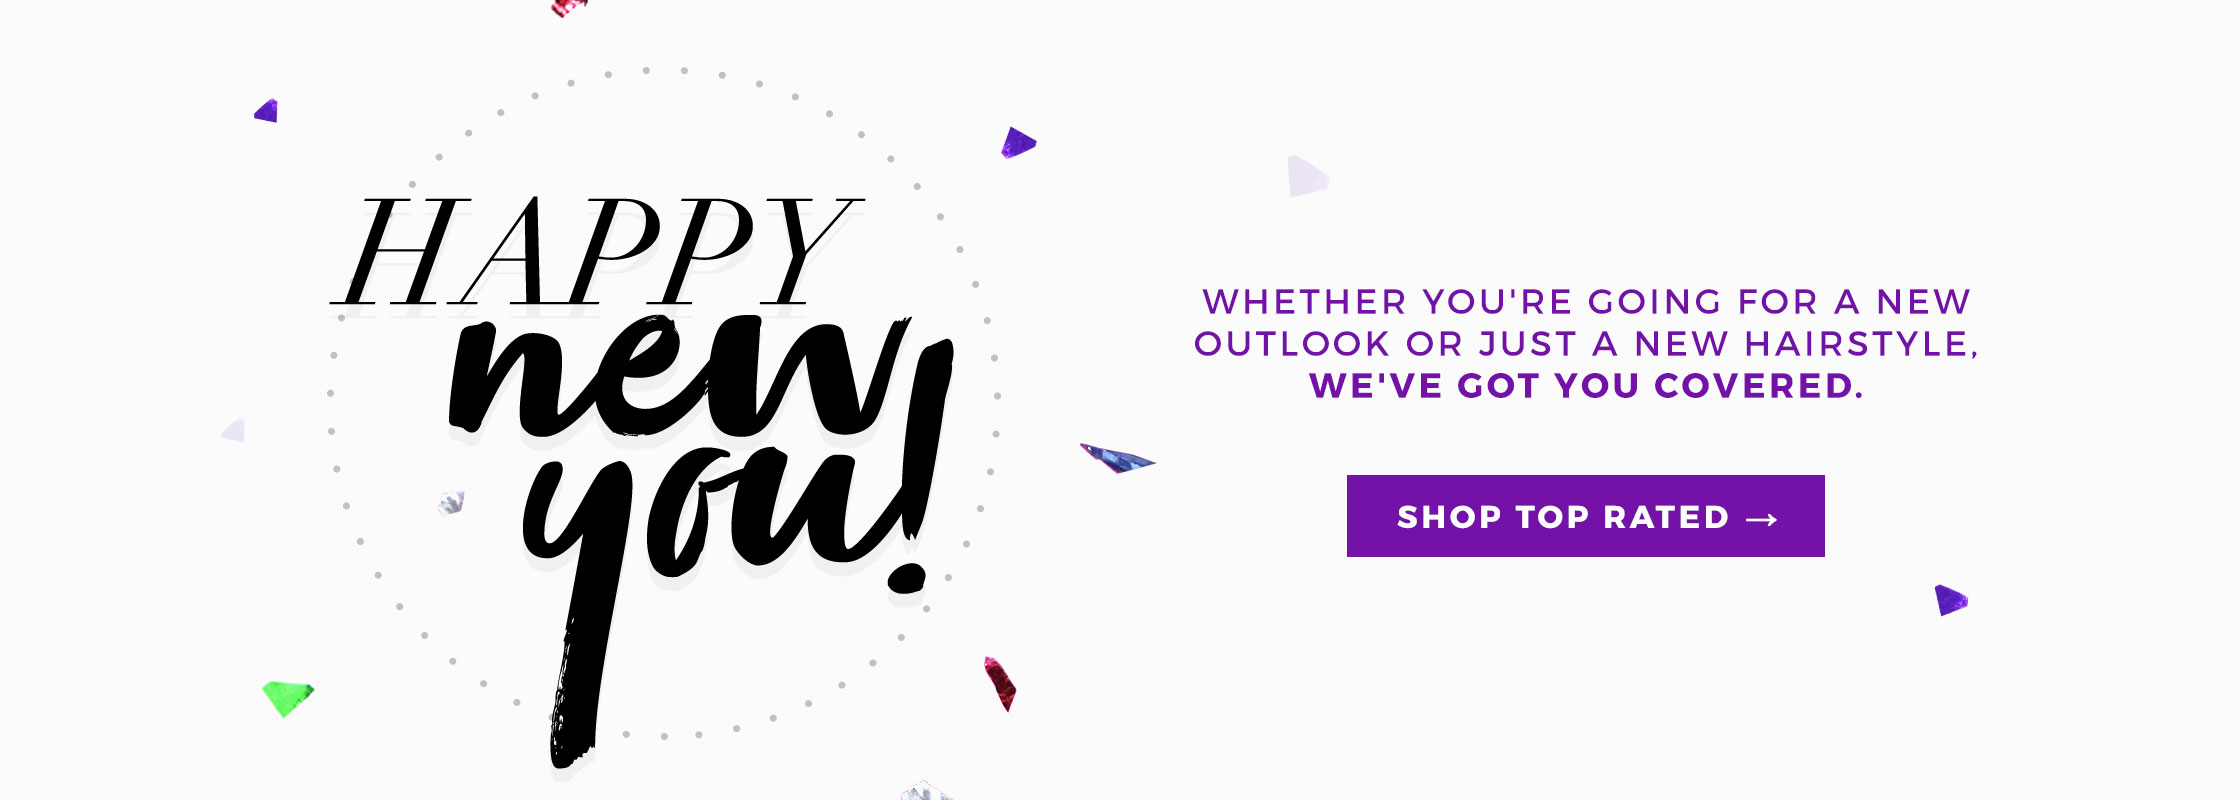 https://cdn4.bigcommerce.com/s-ah05h/product_images/uploaded_images/happynewyou-highlight-mobile.gif?t=1483337913